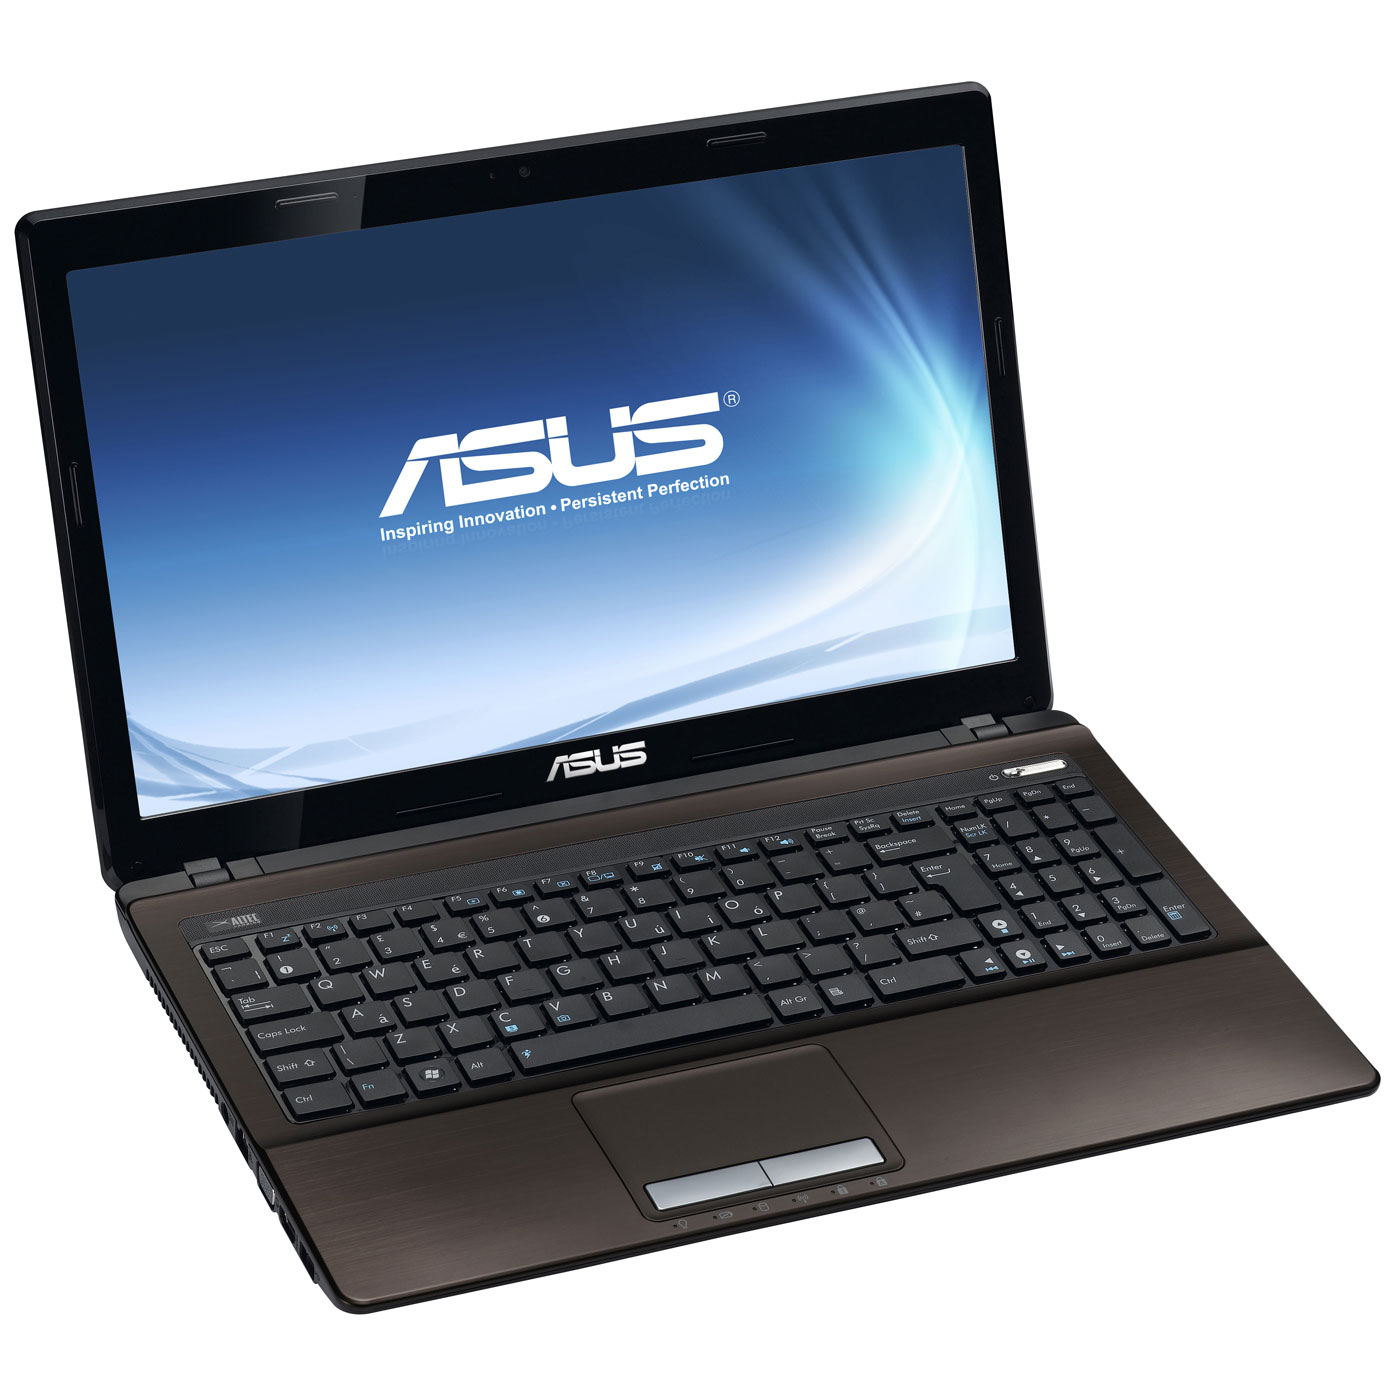 "PC portable ASUS K53E-SX1778V Intel Pentium Dual-Core B940 4 Go 320 Go 15.6"" LED Graveur DVD Wi-Fi N Webcam Windows 7 Premium 64 bits (garantie constructeur 2 ans)"